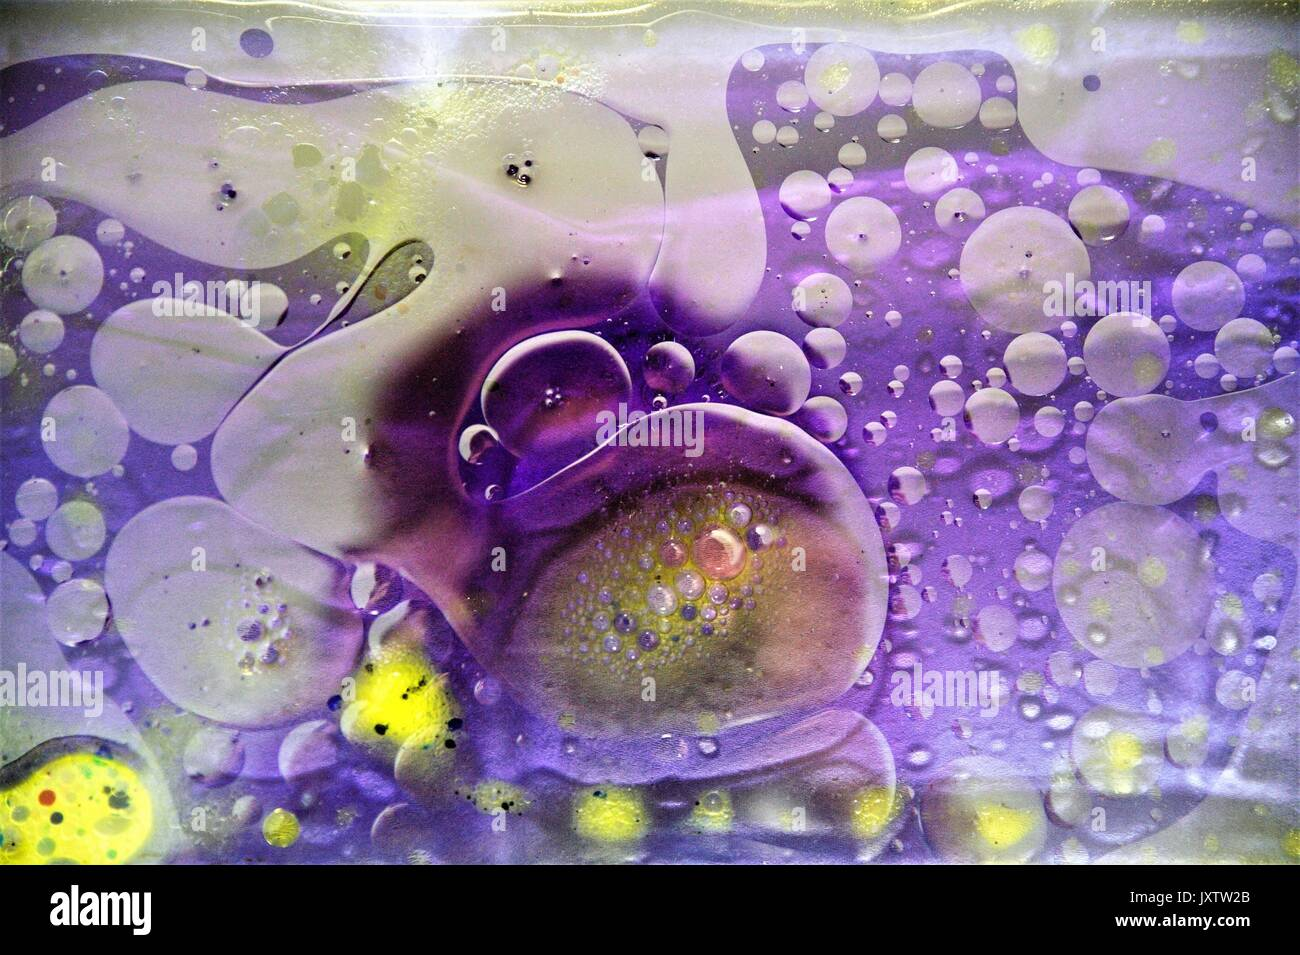 Artist making abstract art from oil and water. - Stock Image